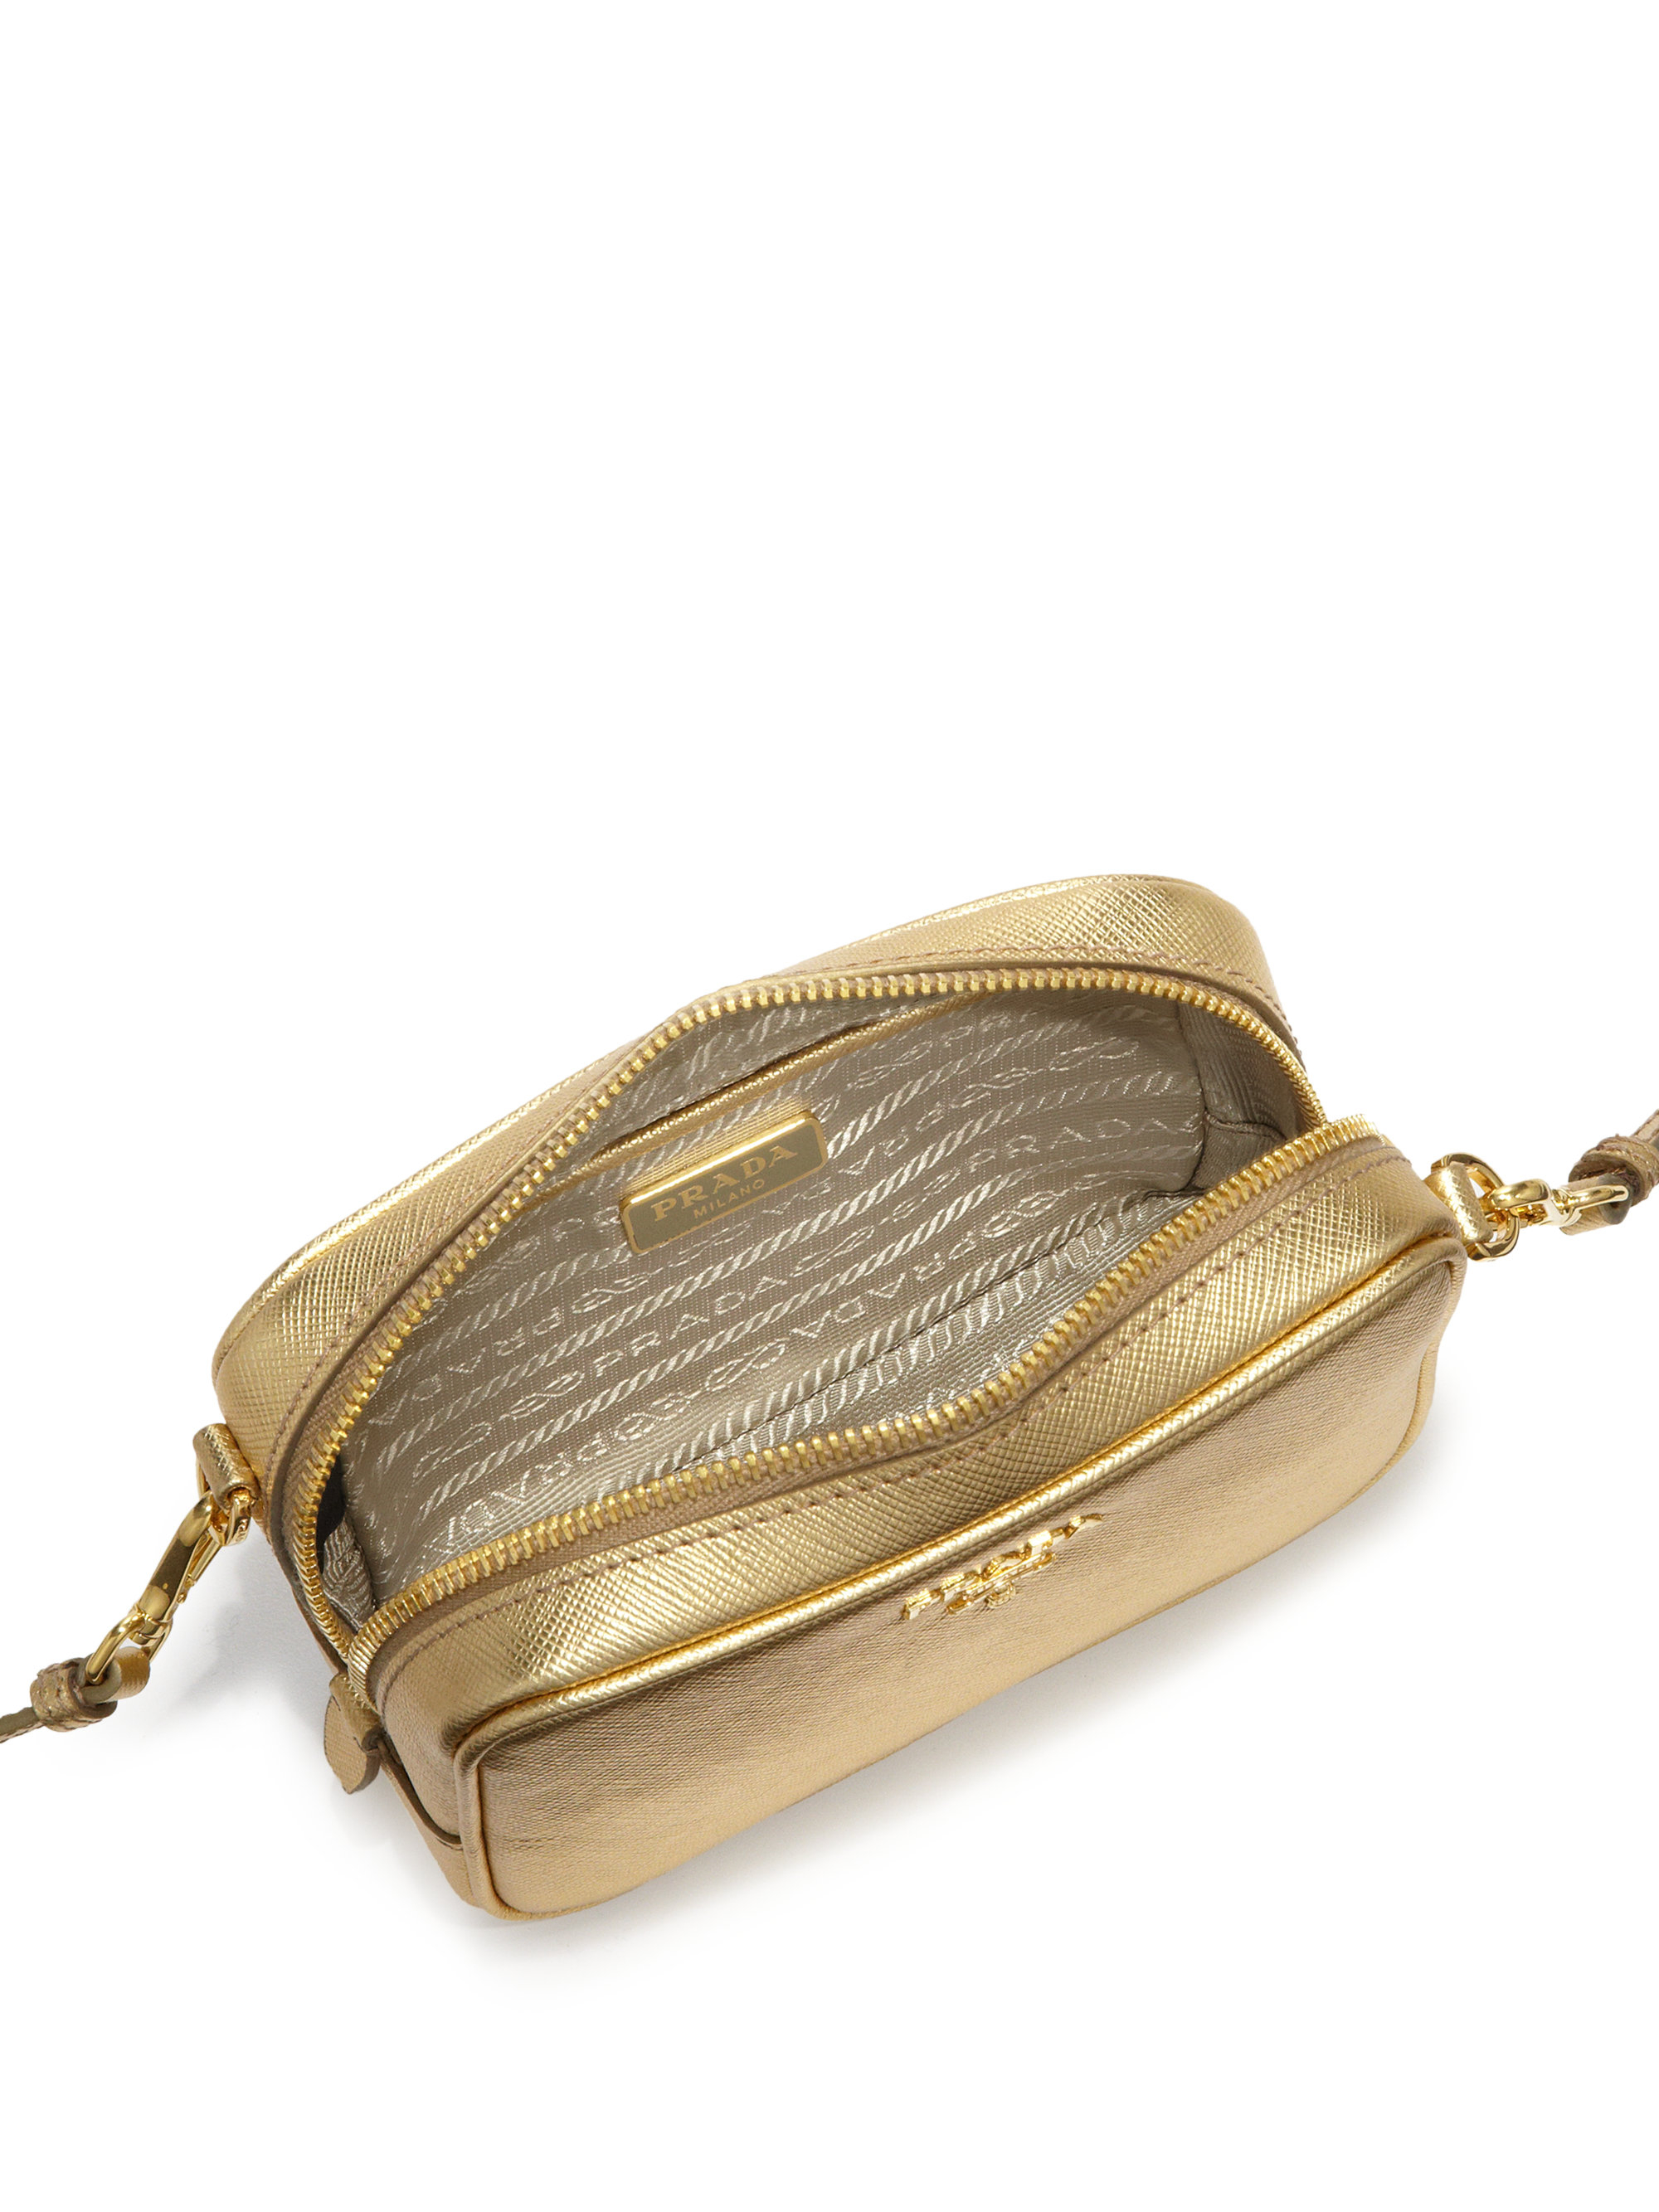 Prada Metallic Saffiano Leather Camera Bag in Gold | Lyst